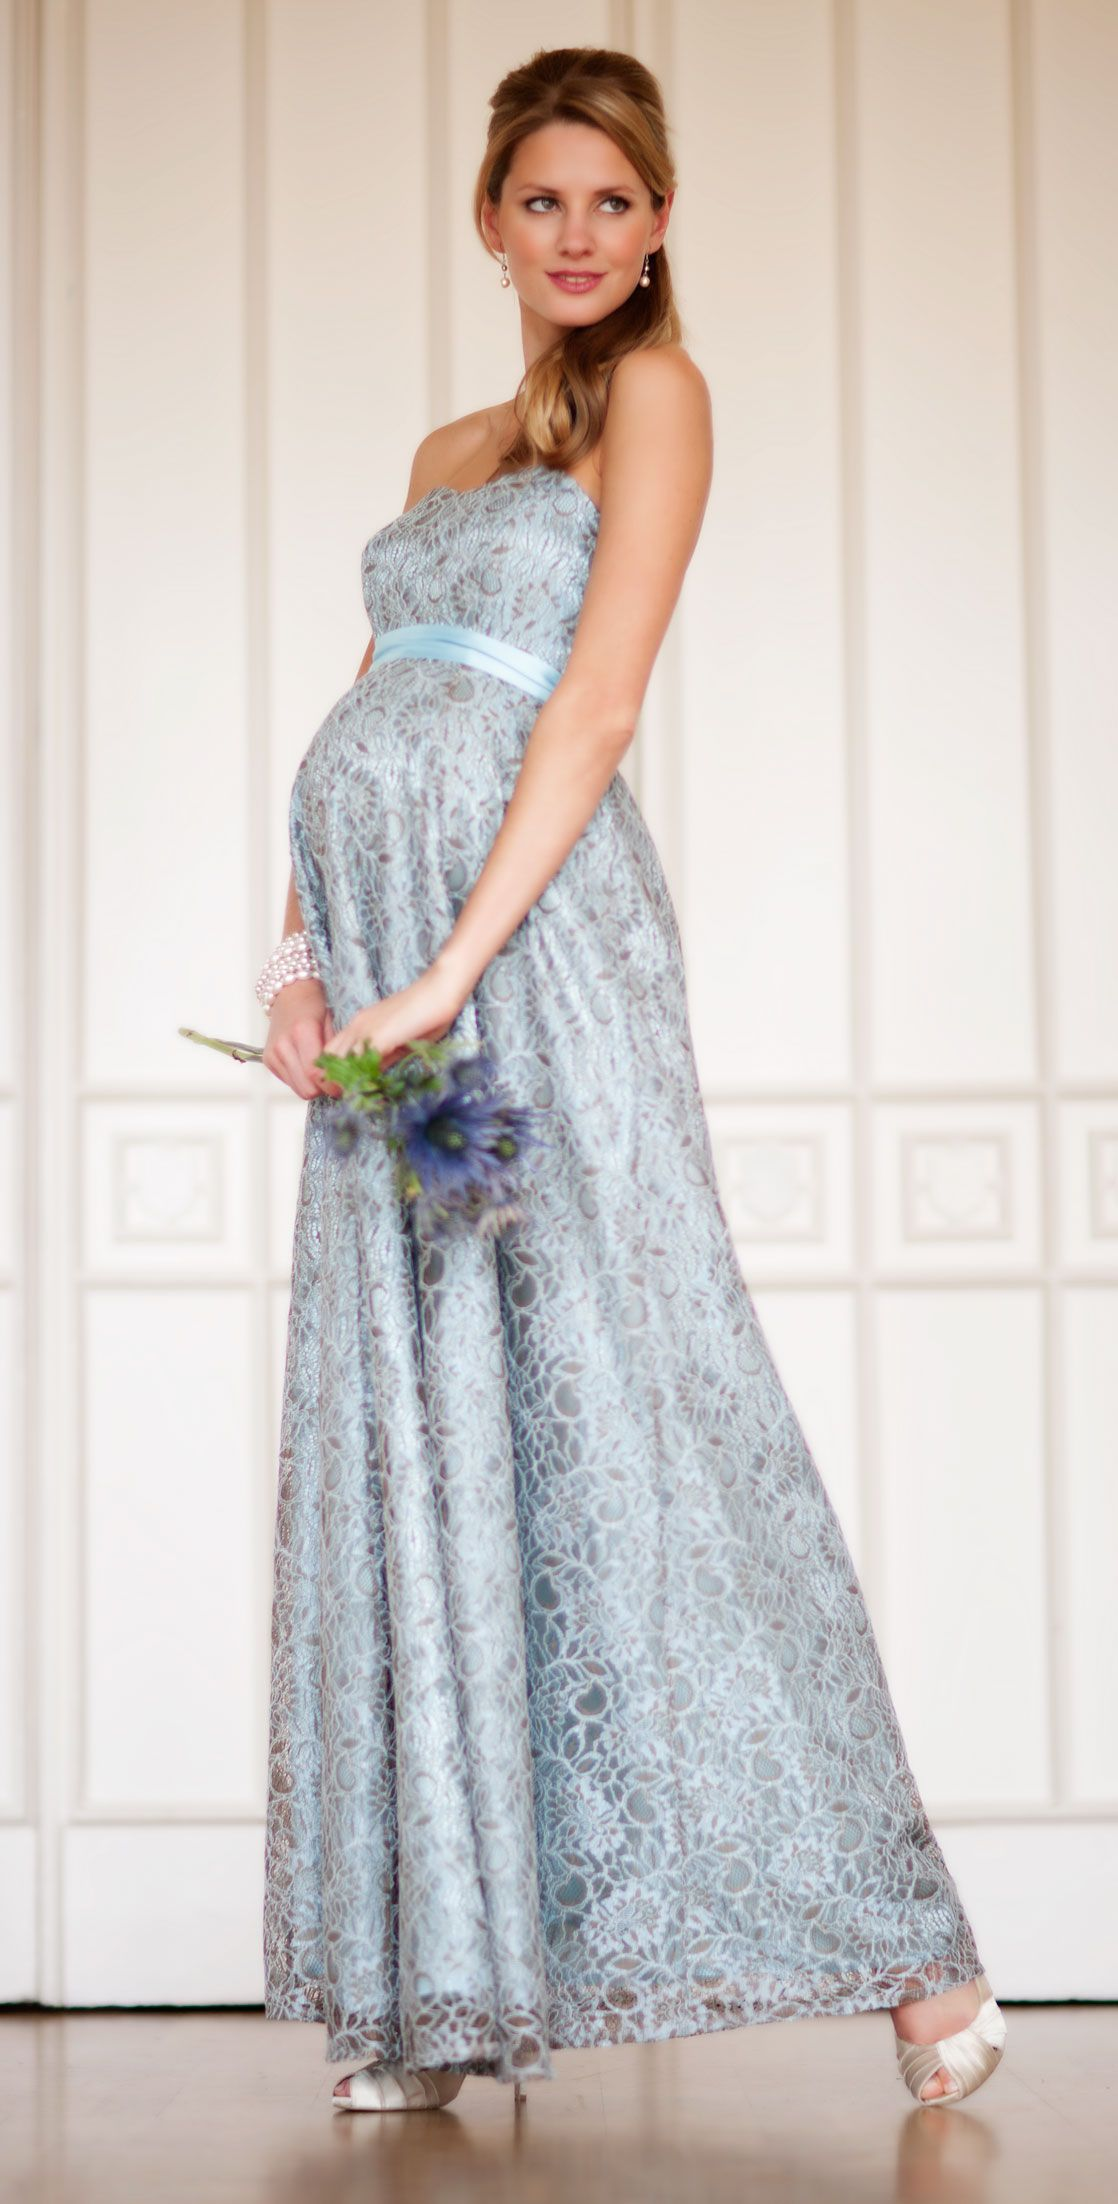 Pin by Allison Charles on Maternity style   Pinterest   Maternity ...